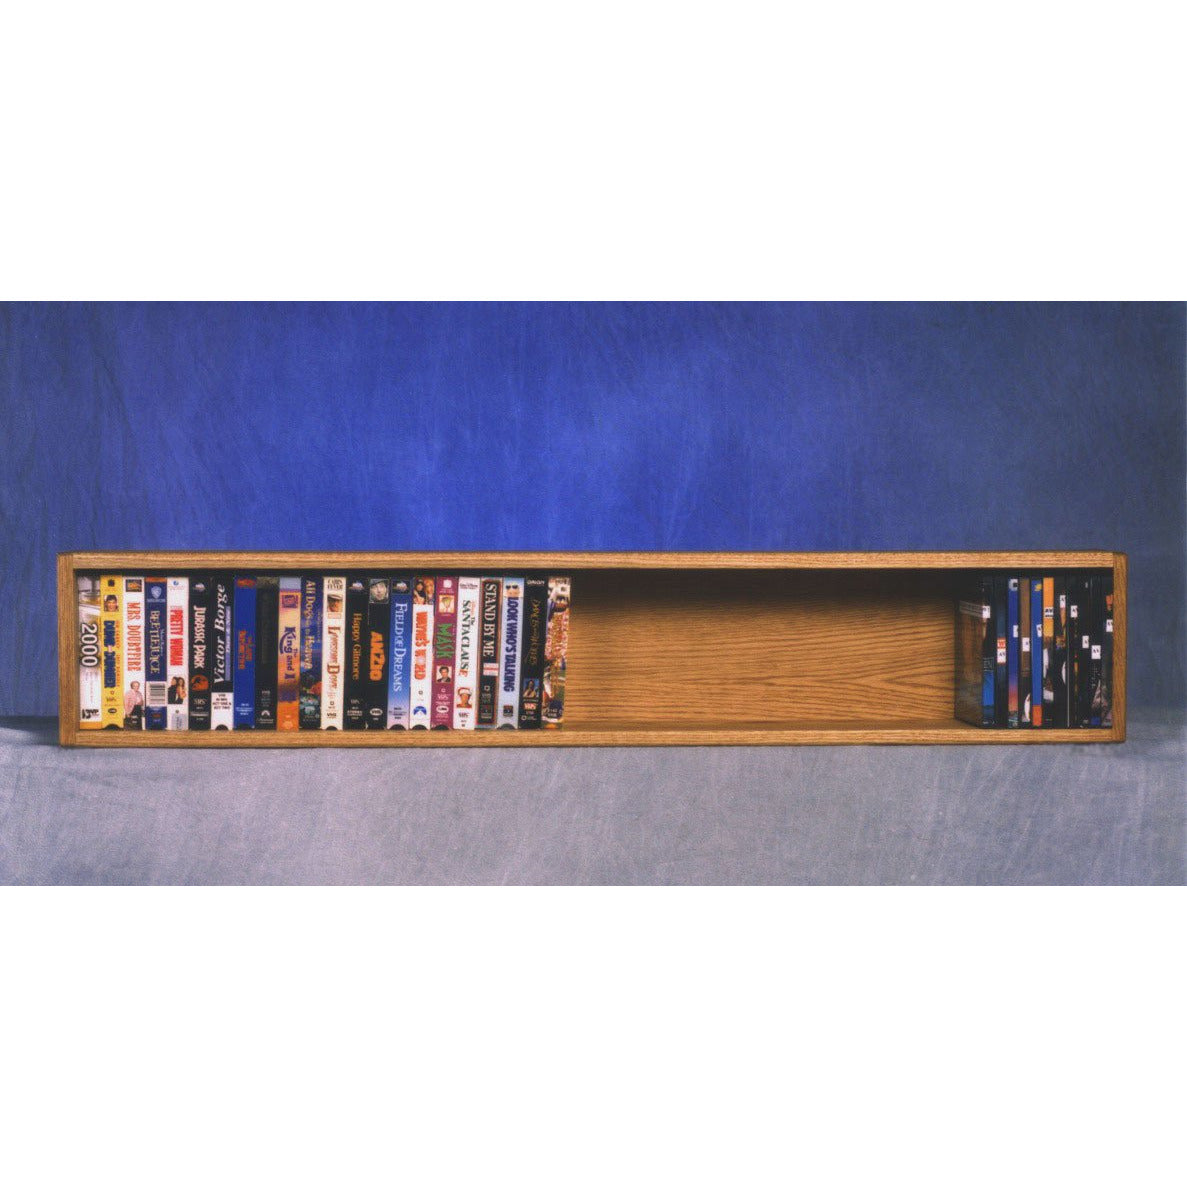 08 Series CD/DVD/VHS Combination Cabinets - 12 sizes